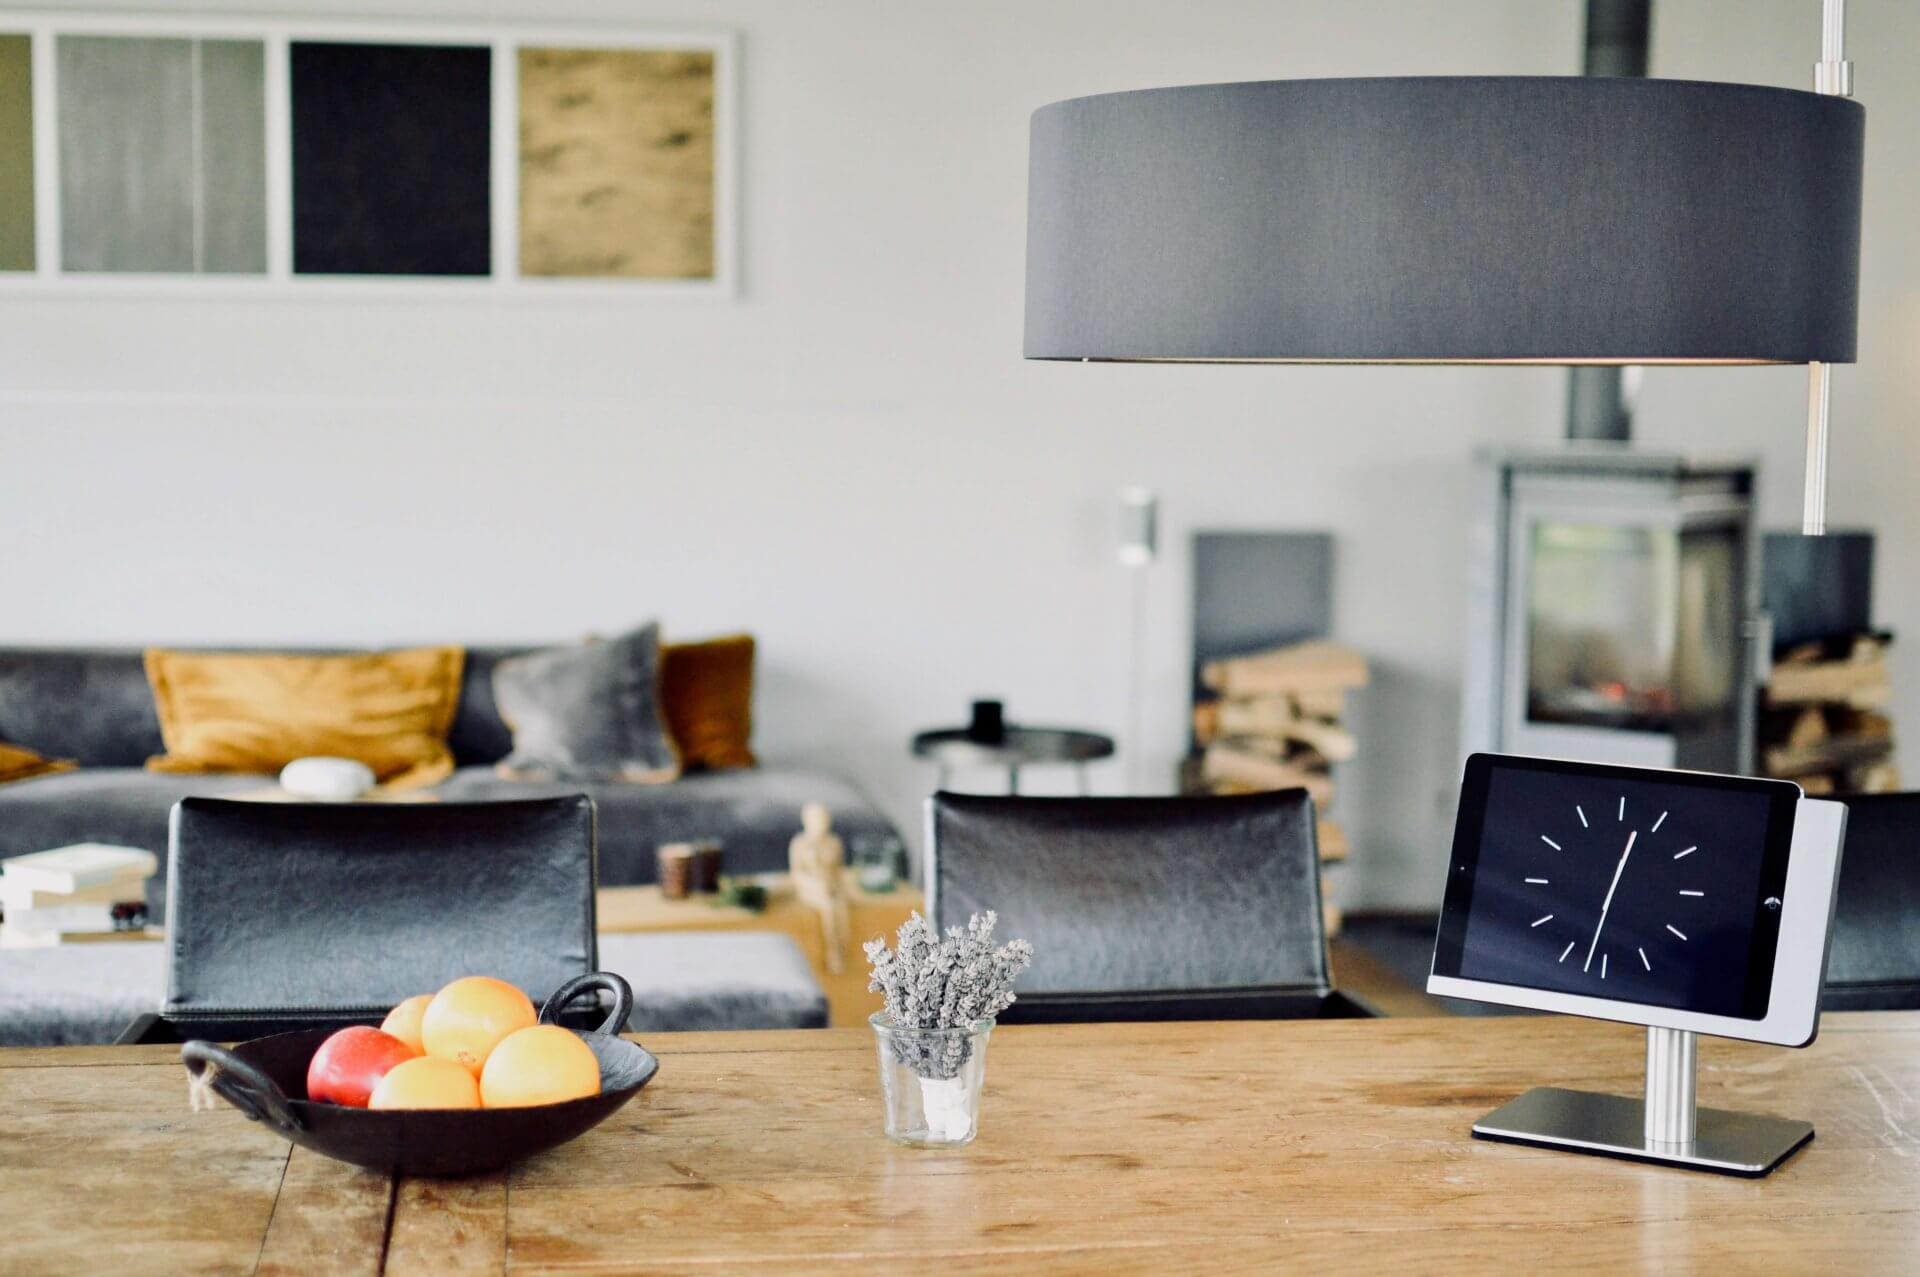 """free flex - """"With the Viveroo free flex docking station, your tablet is right where you need it, when you need it"""""""